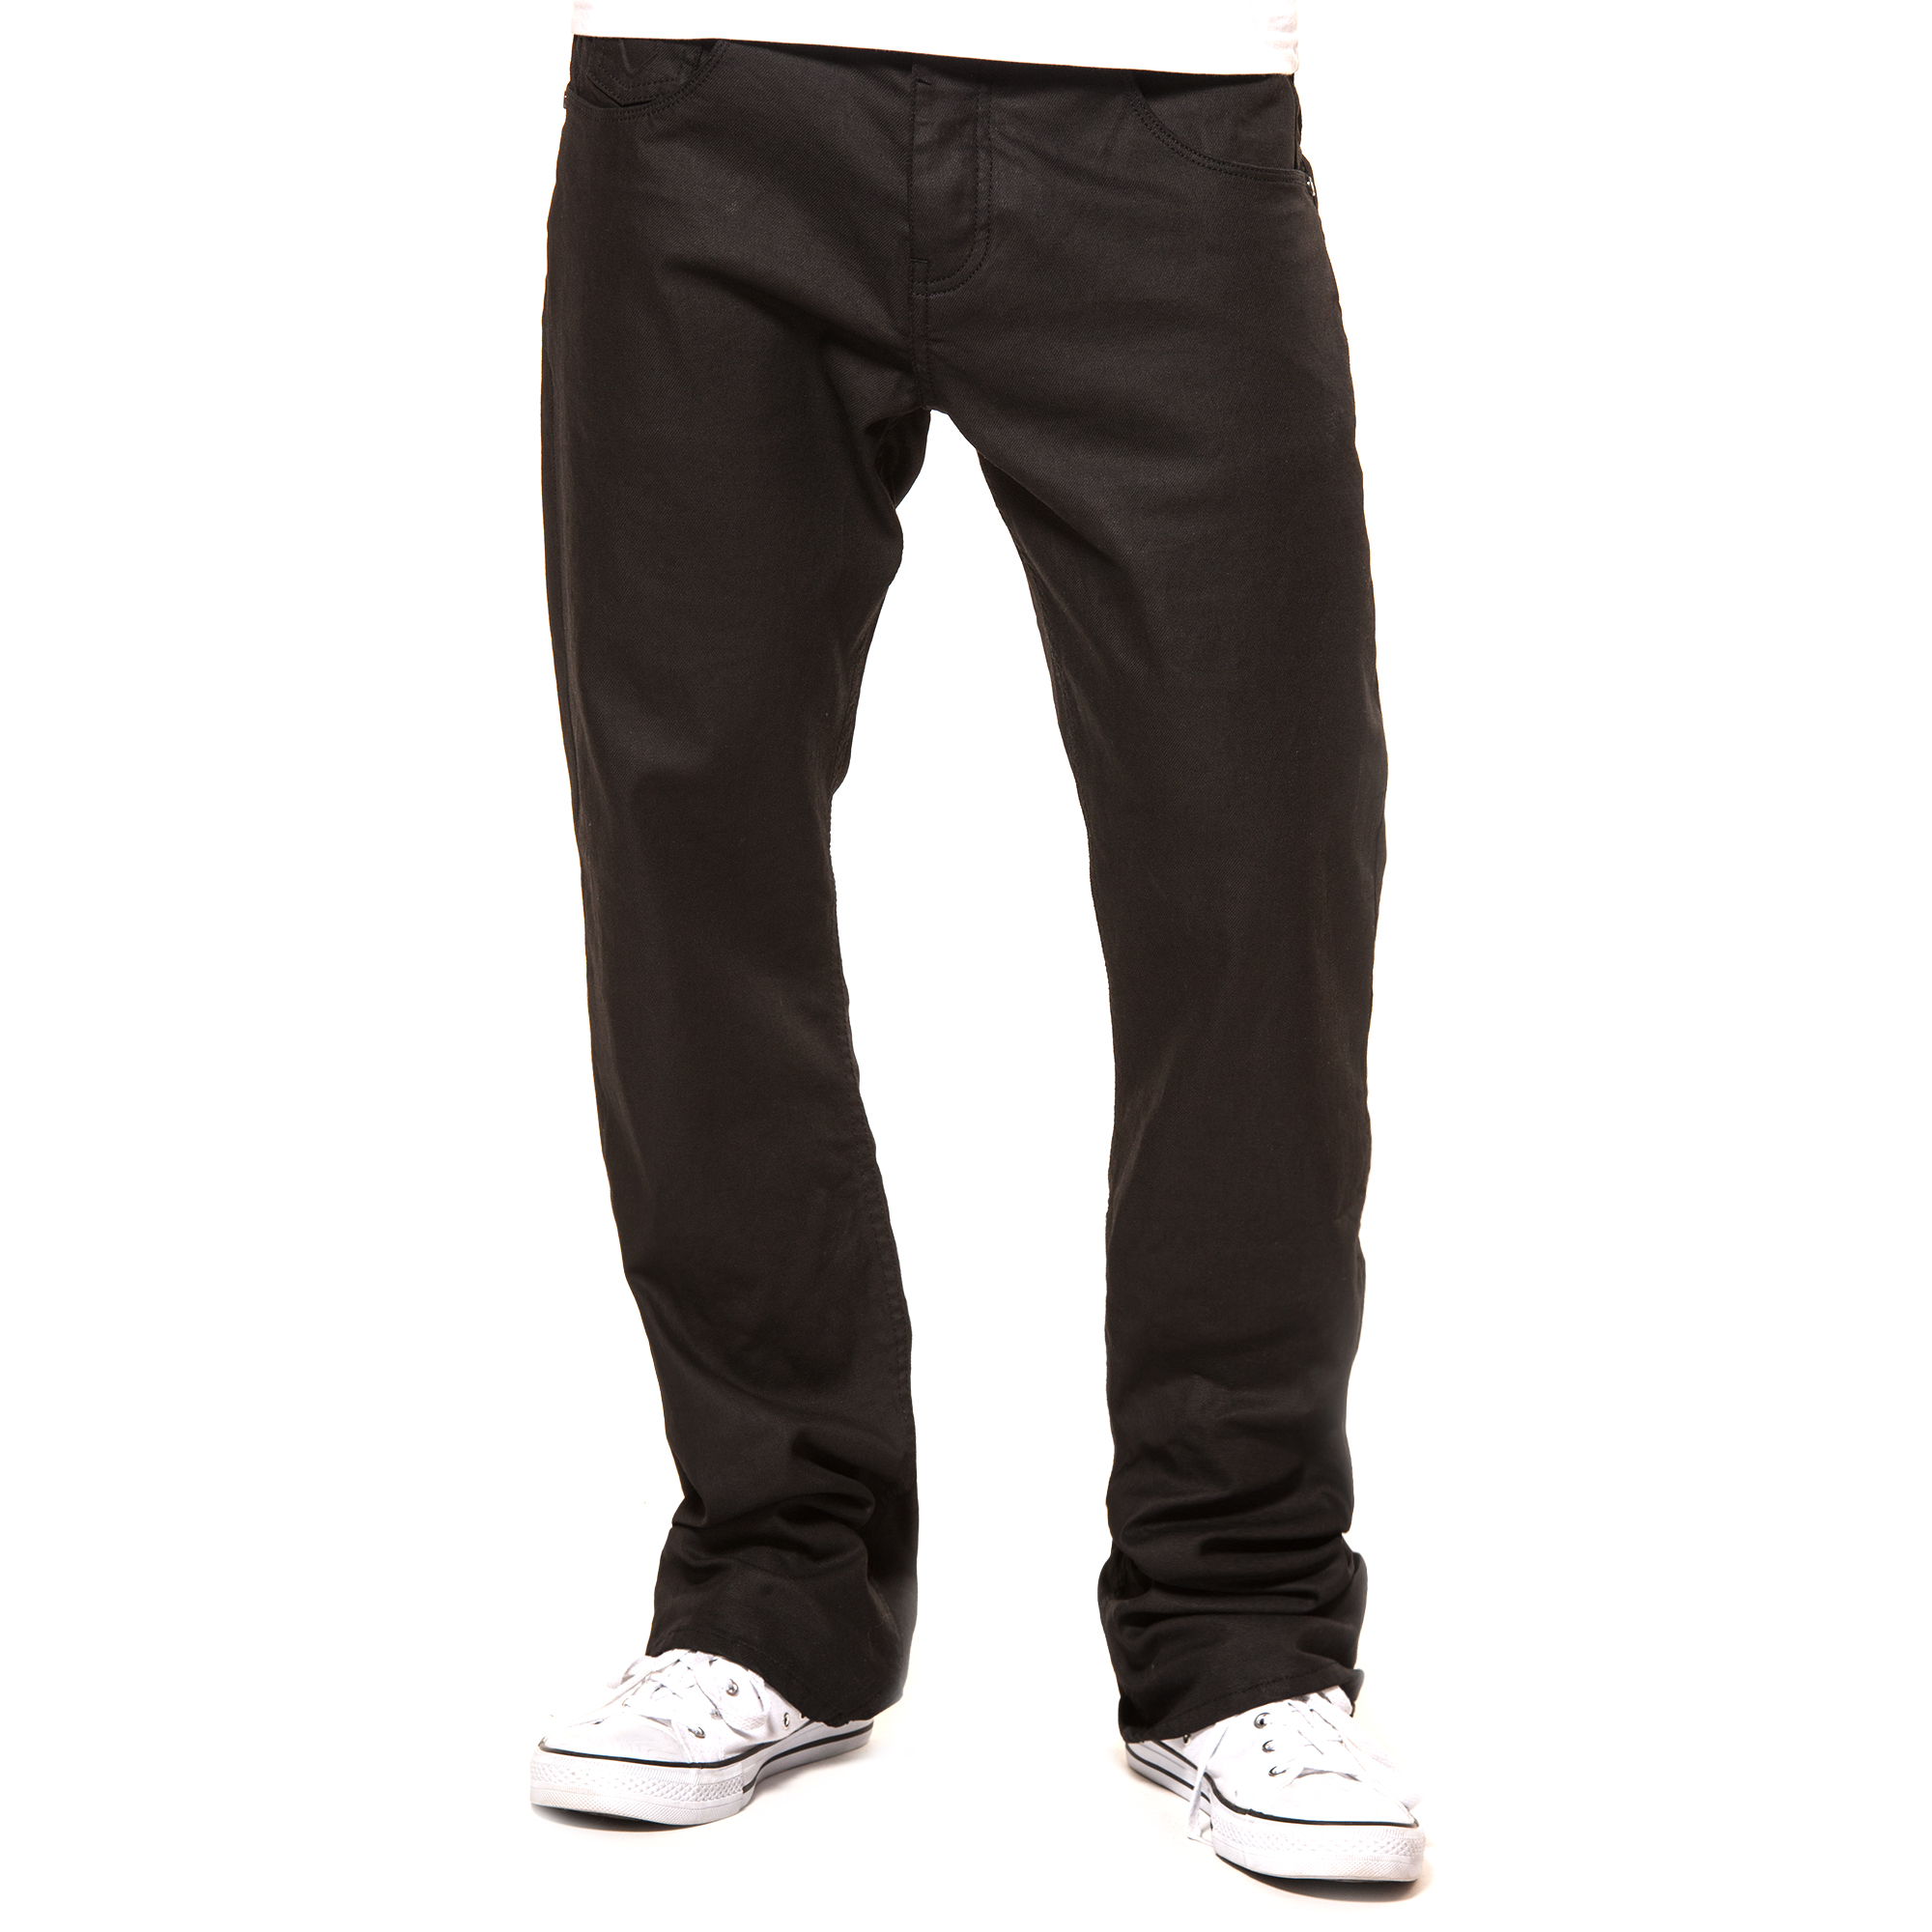 Garcia MO 395 Black Rinse Straight Fit Jeans